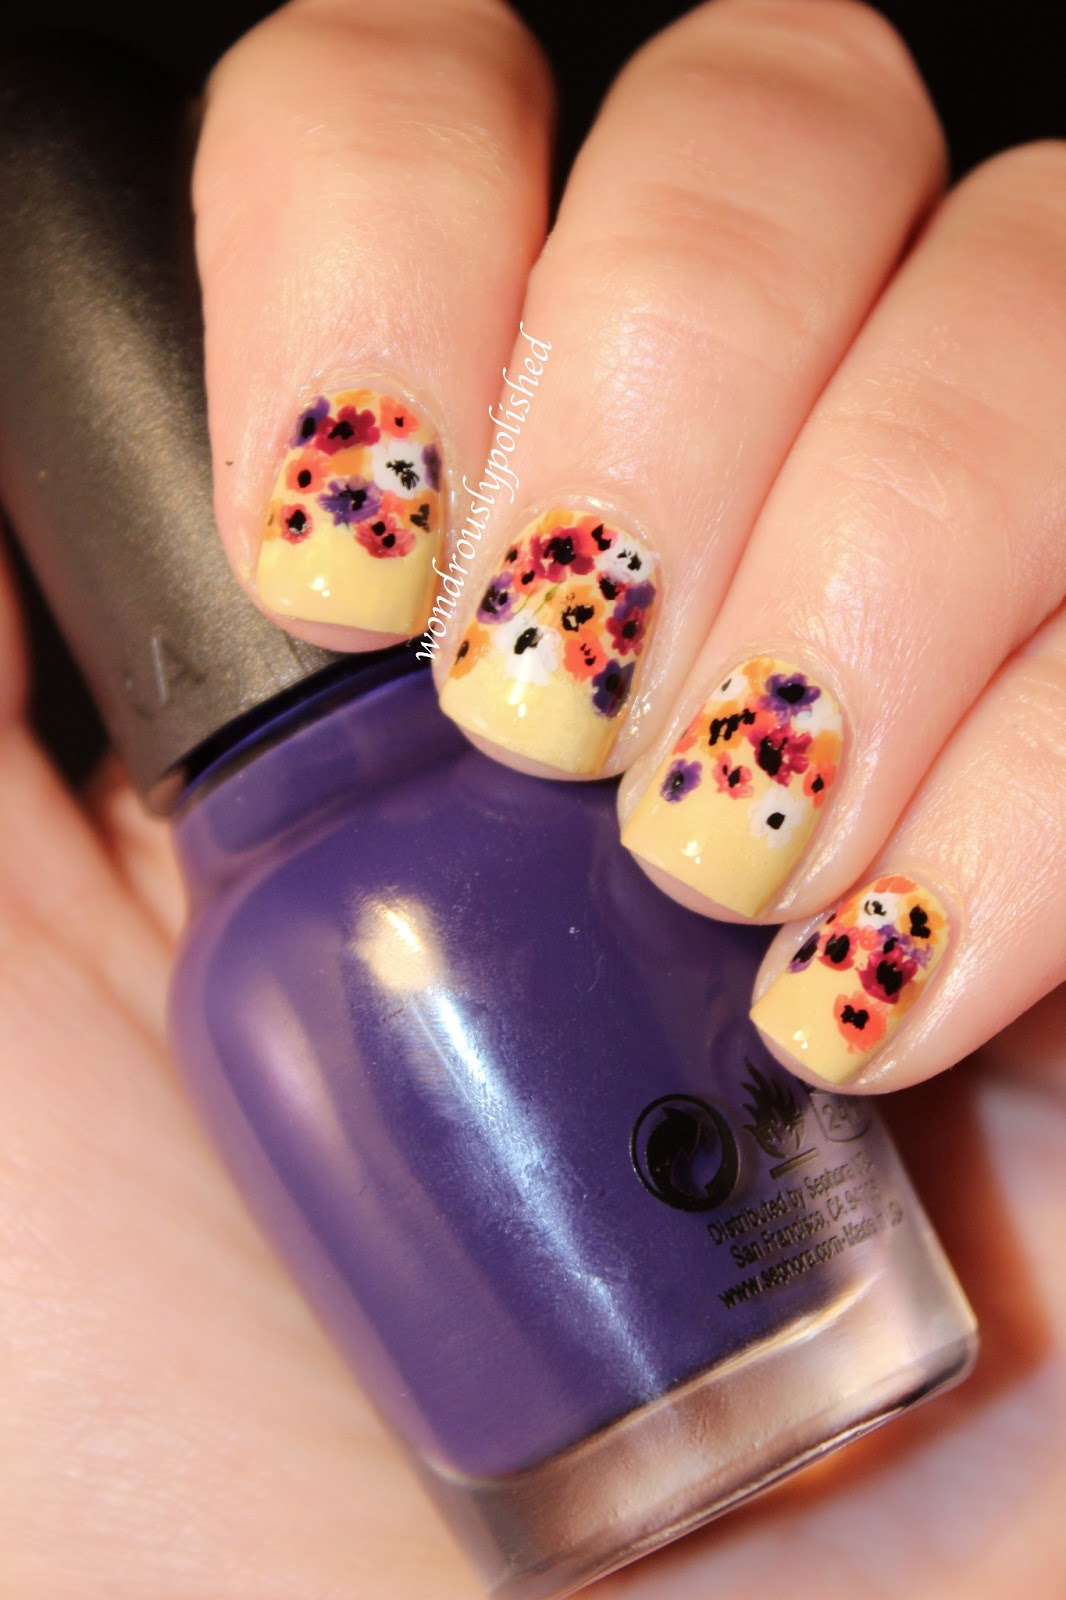 Wondrously Polished February Nail Art Challenge: Wondrously Polished: February Nail Art Challenge